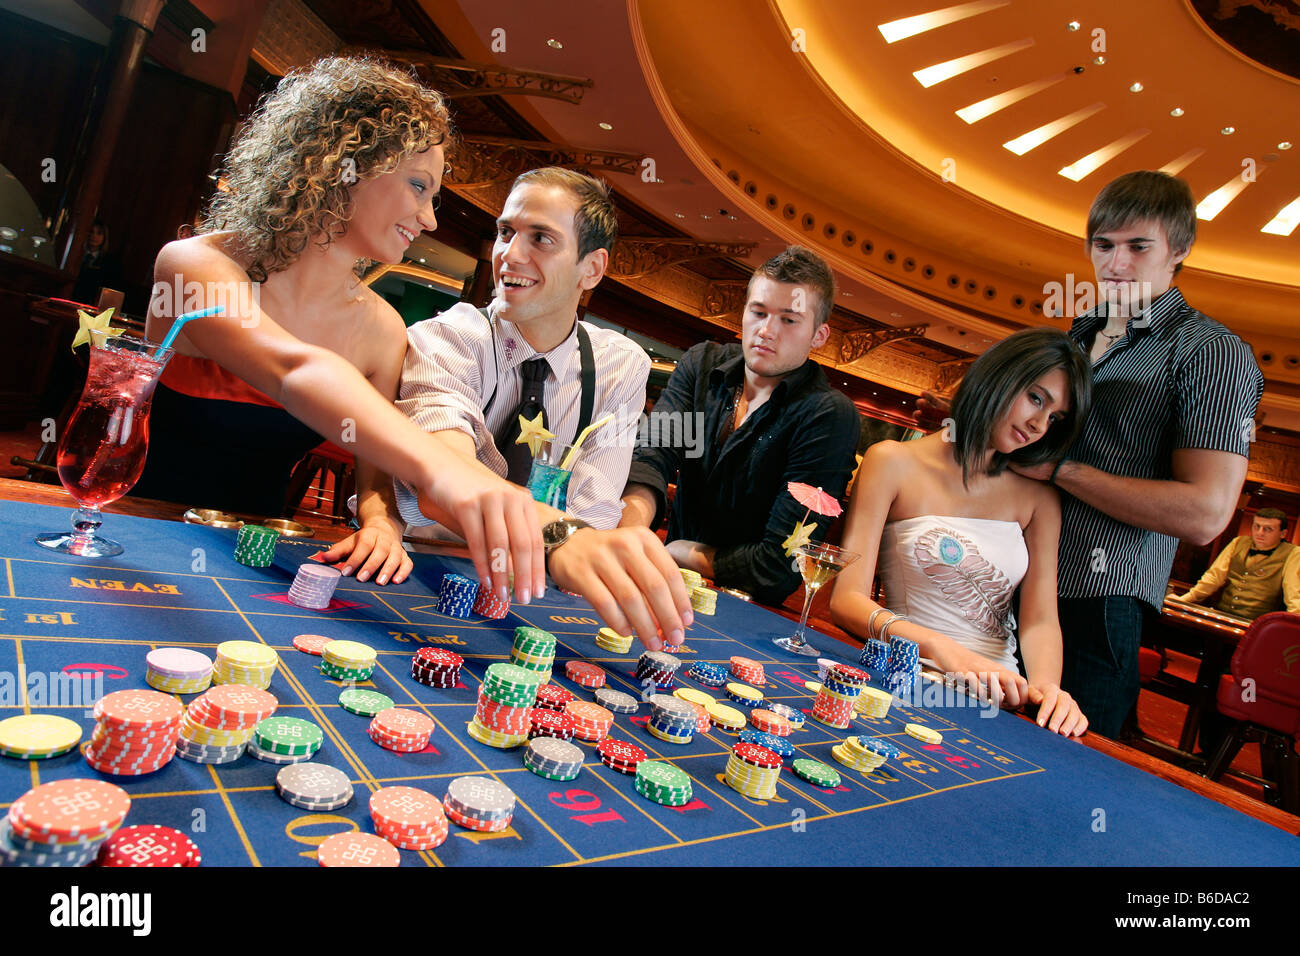 casino betting online sizzling hot online casino